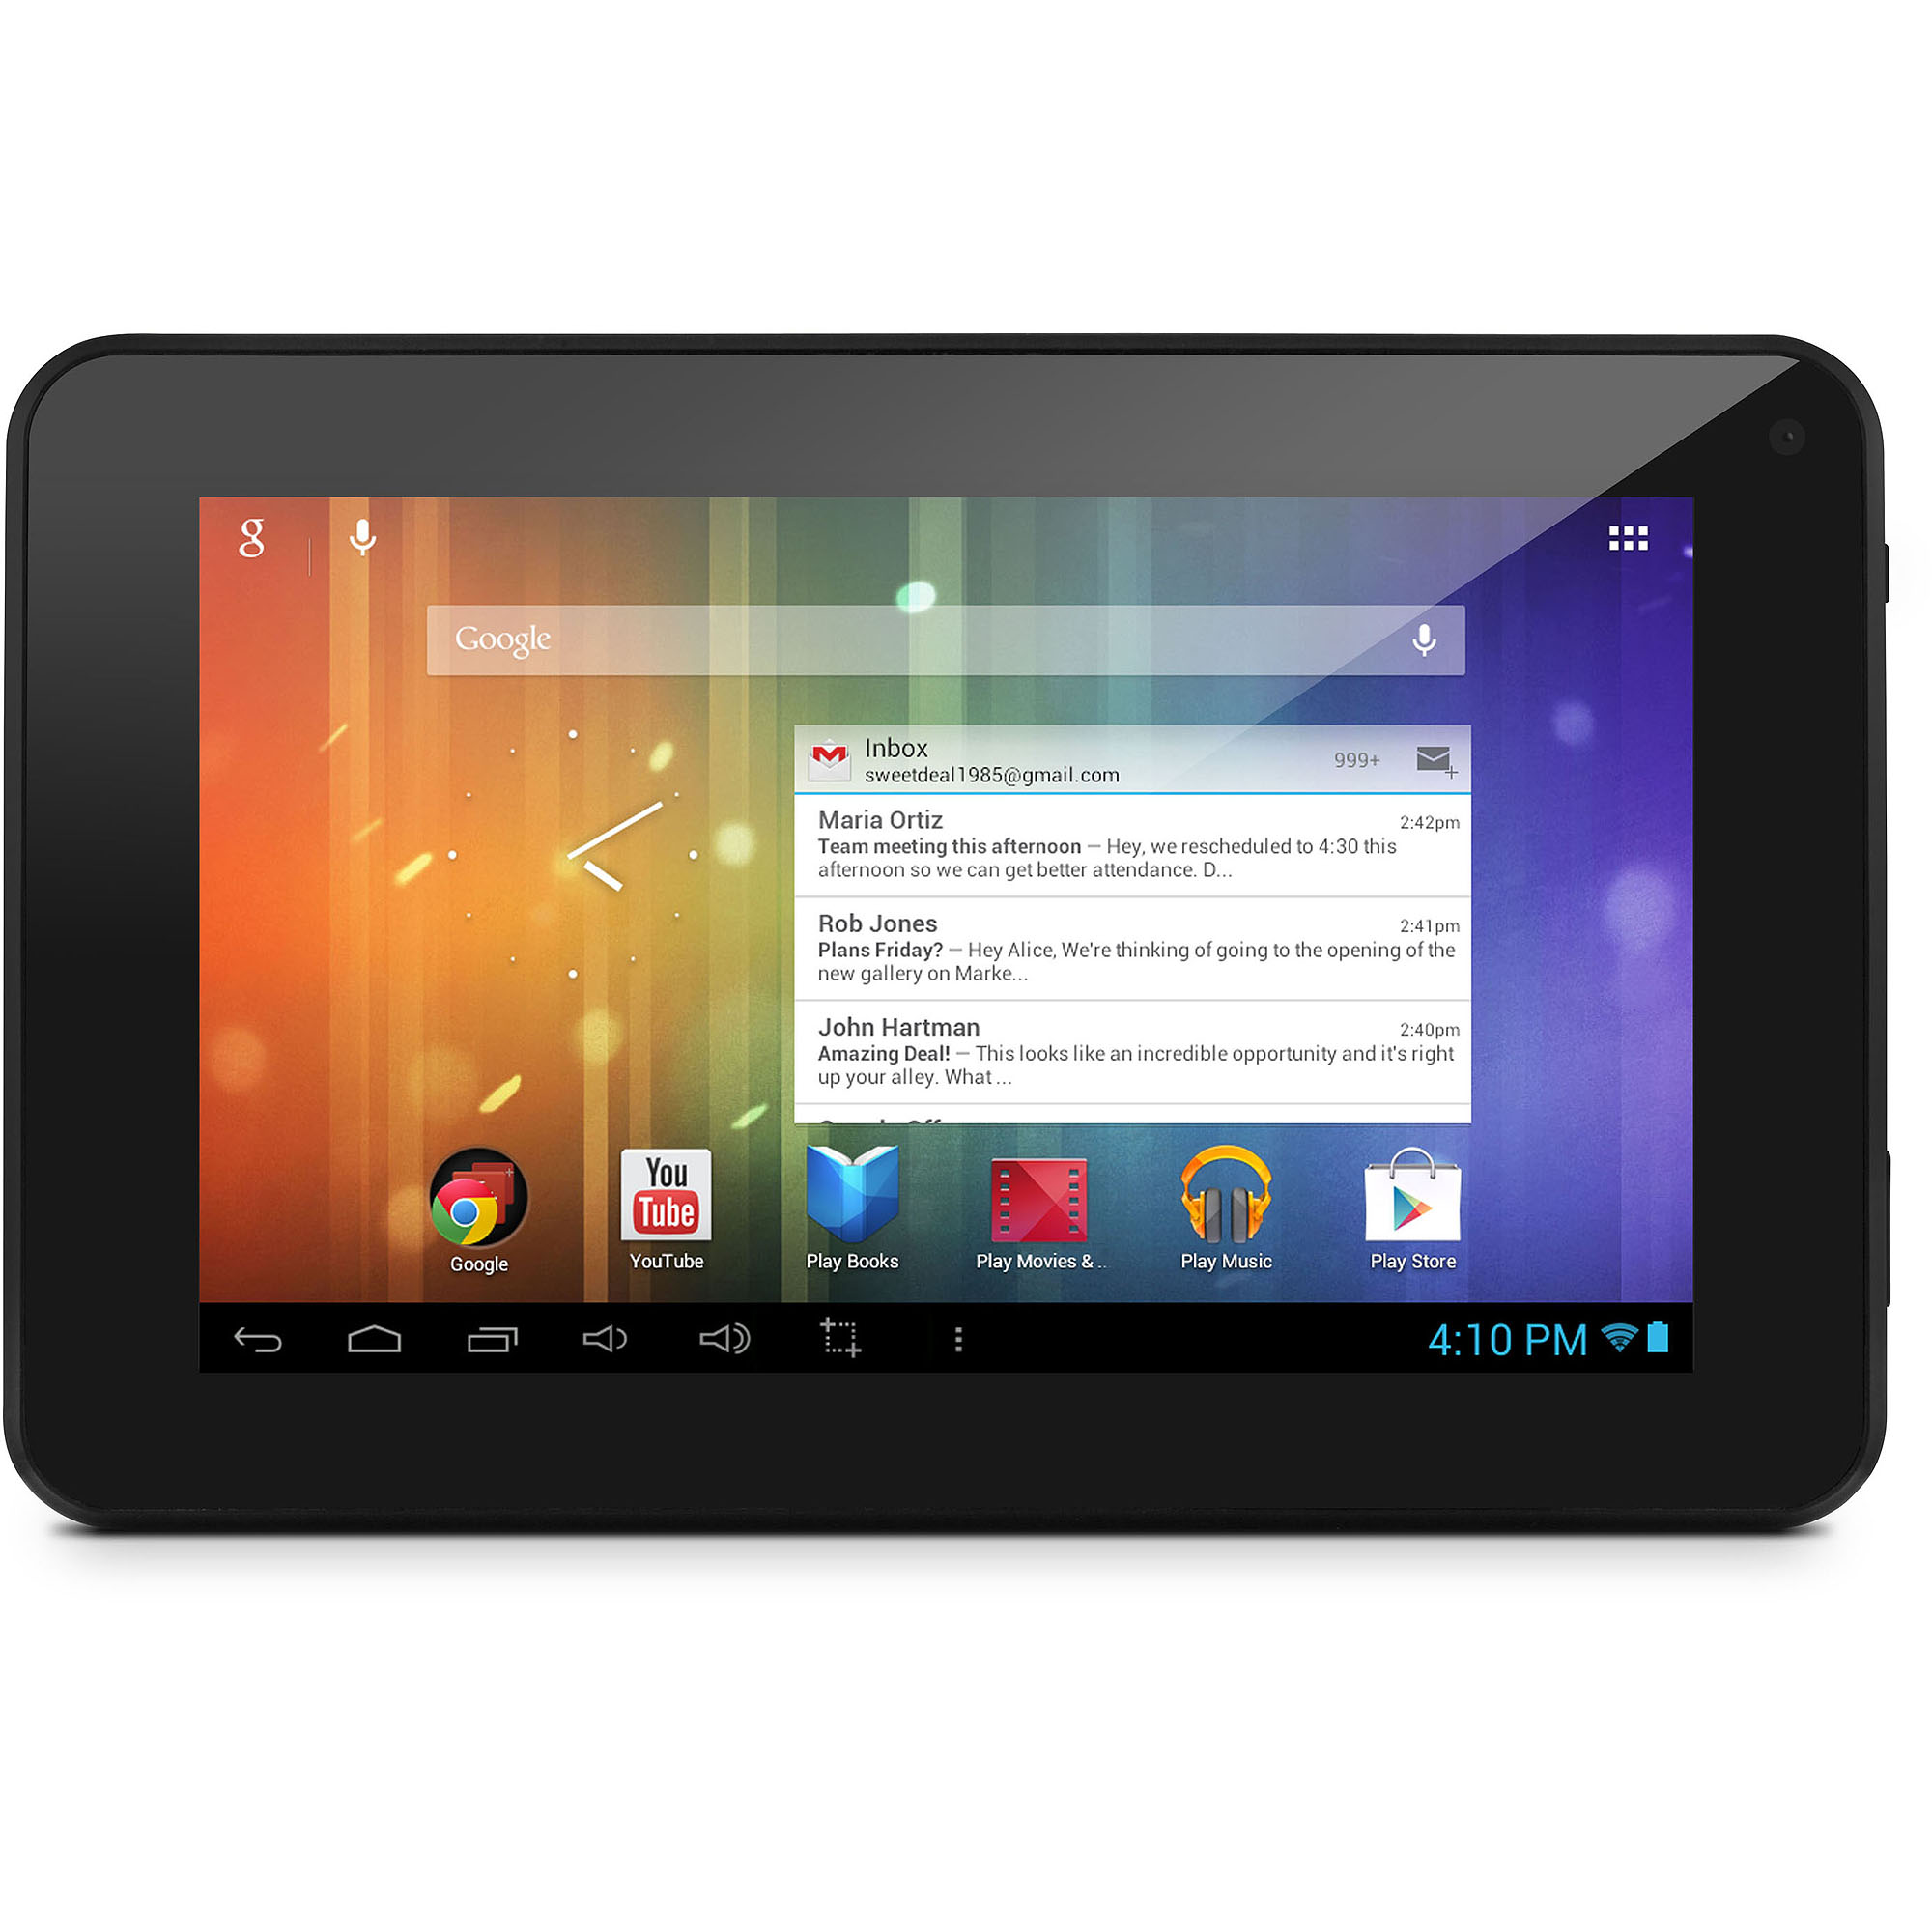 DEALS Ematic Refurbished EM63BL-RB HD with WiFi 7″ Touchscreen Tablet PC Featuring Android 4.1 (Jelly Bean) Operating System, Black LOW PRICE